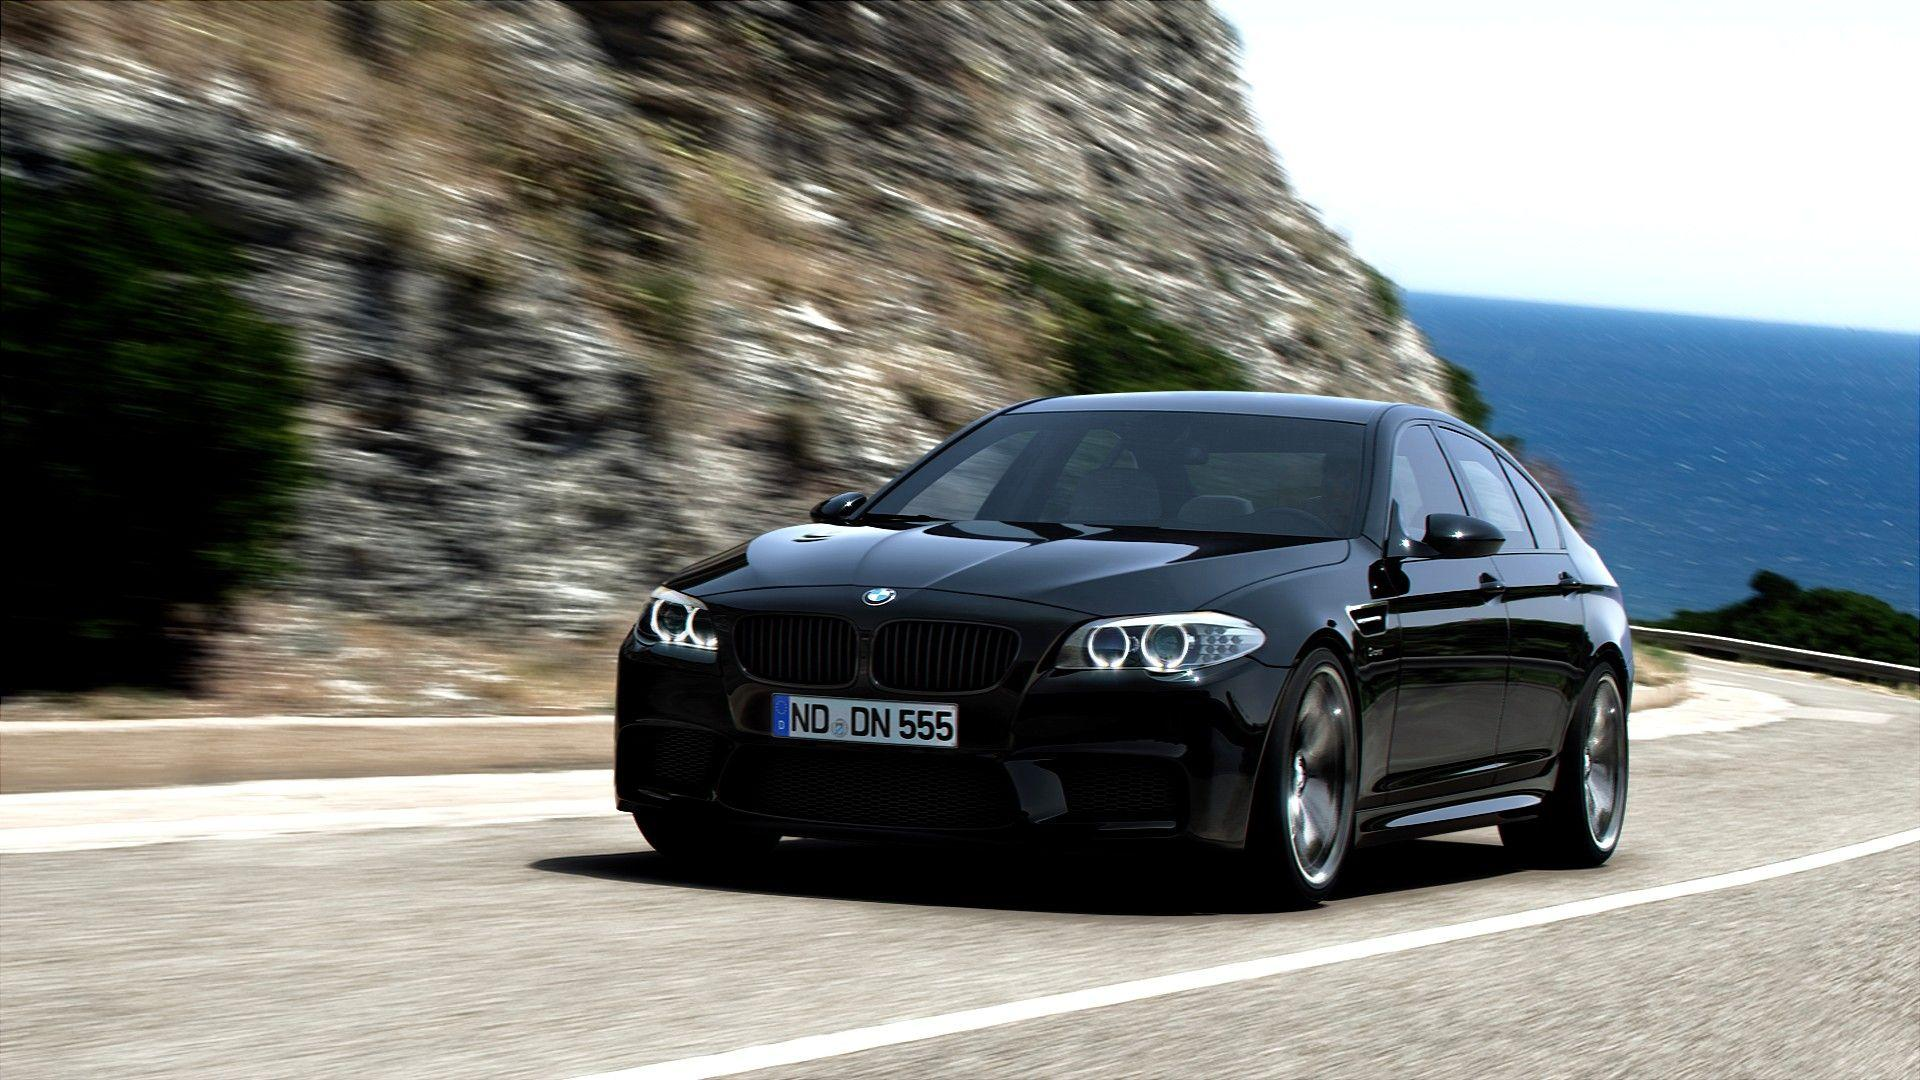 Bmw M5 F10 Wallpapers HD Download